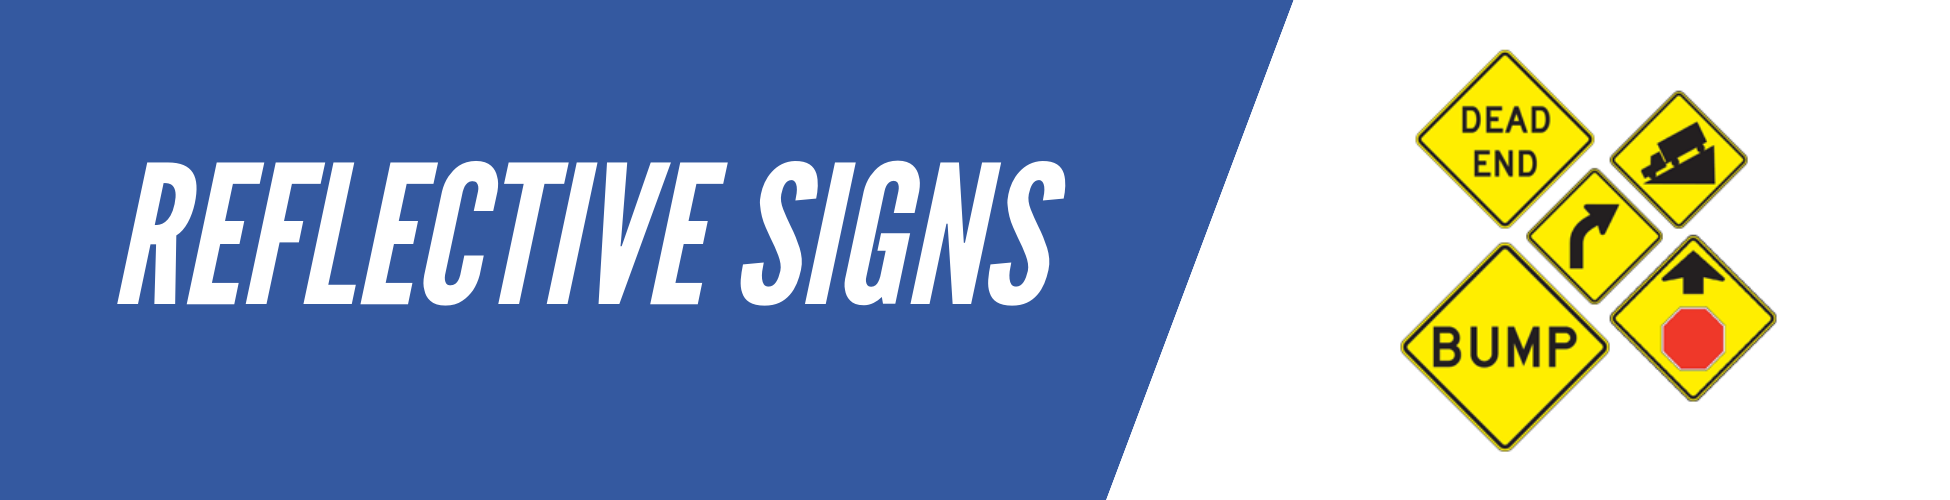 reflective-signs-banner.png